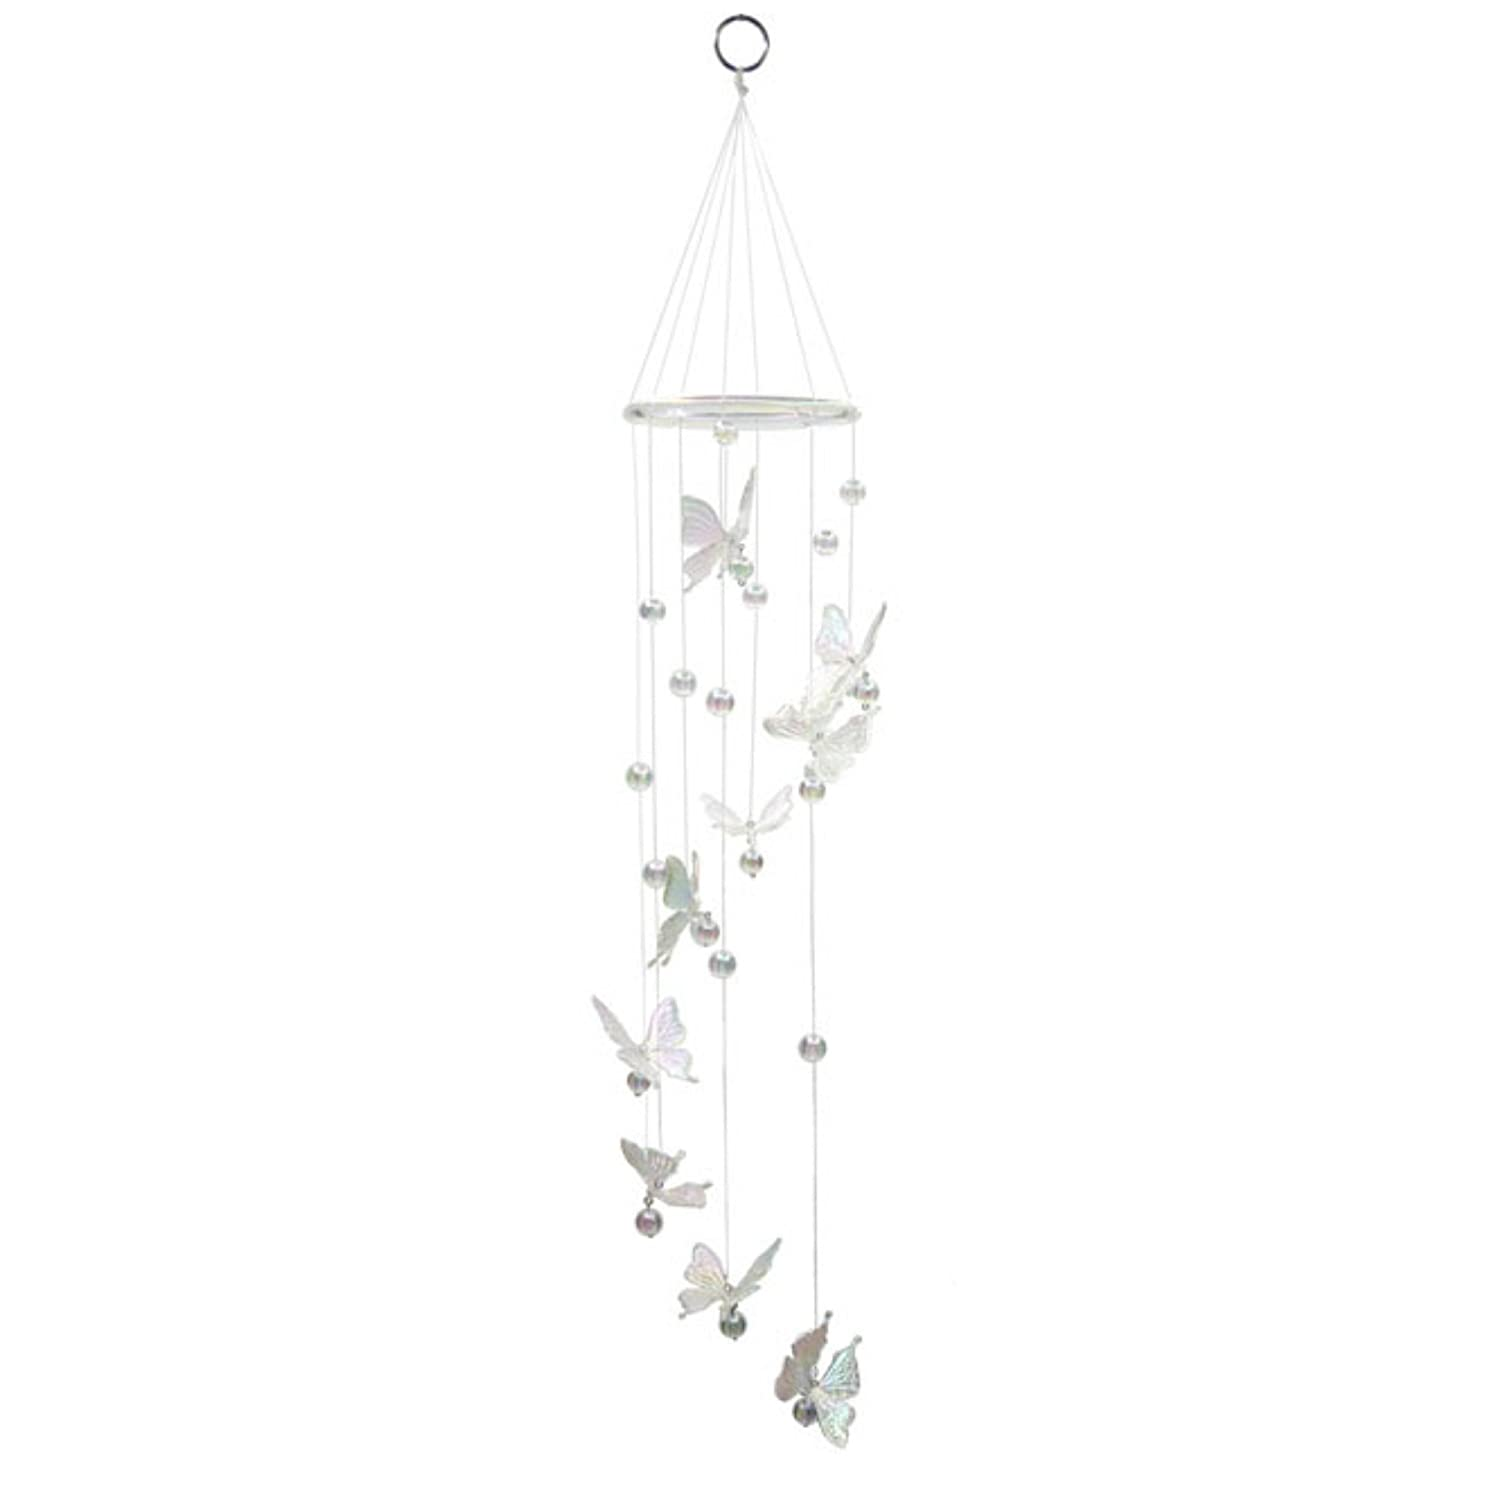 Hanging Mobile Spiralling Butterfly Garden Chime With Bells Jones Home And Gift